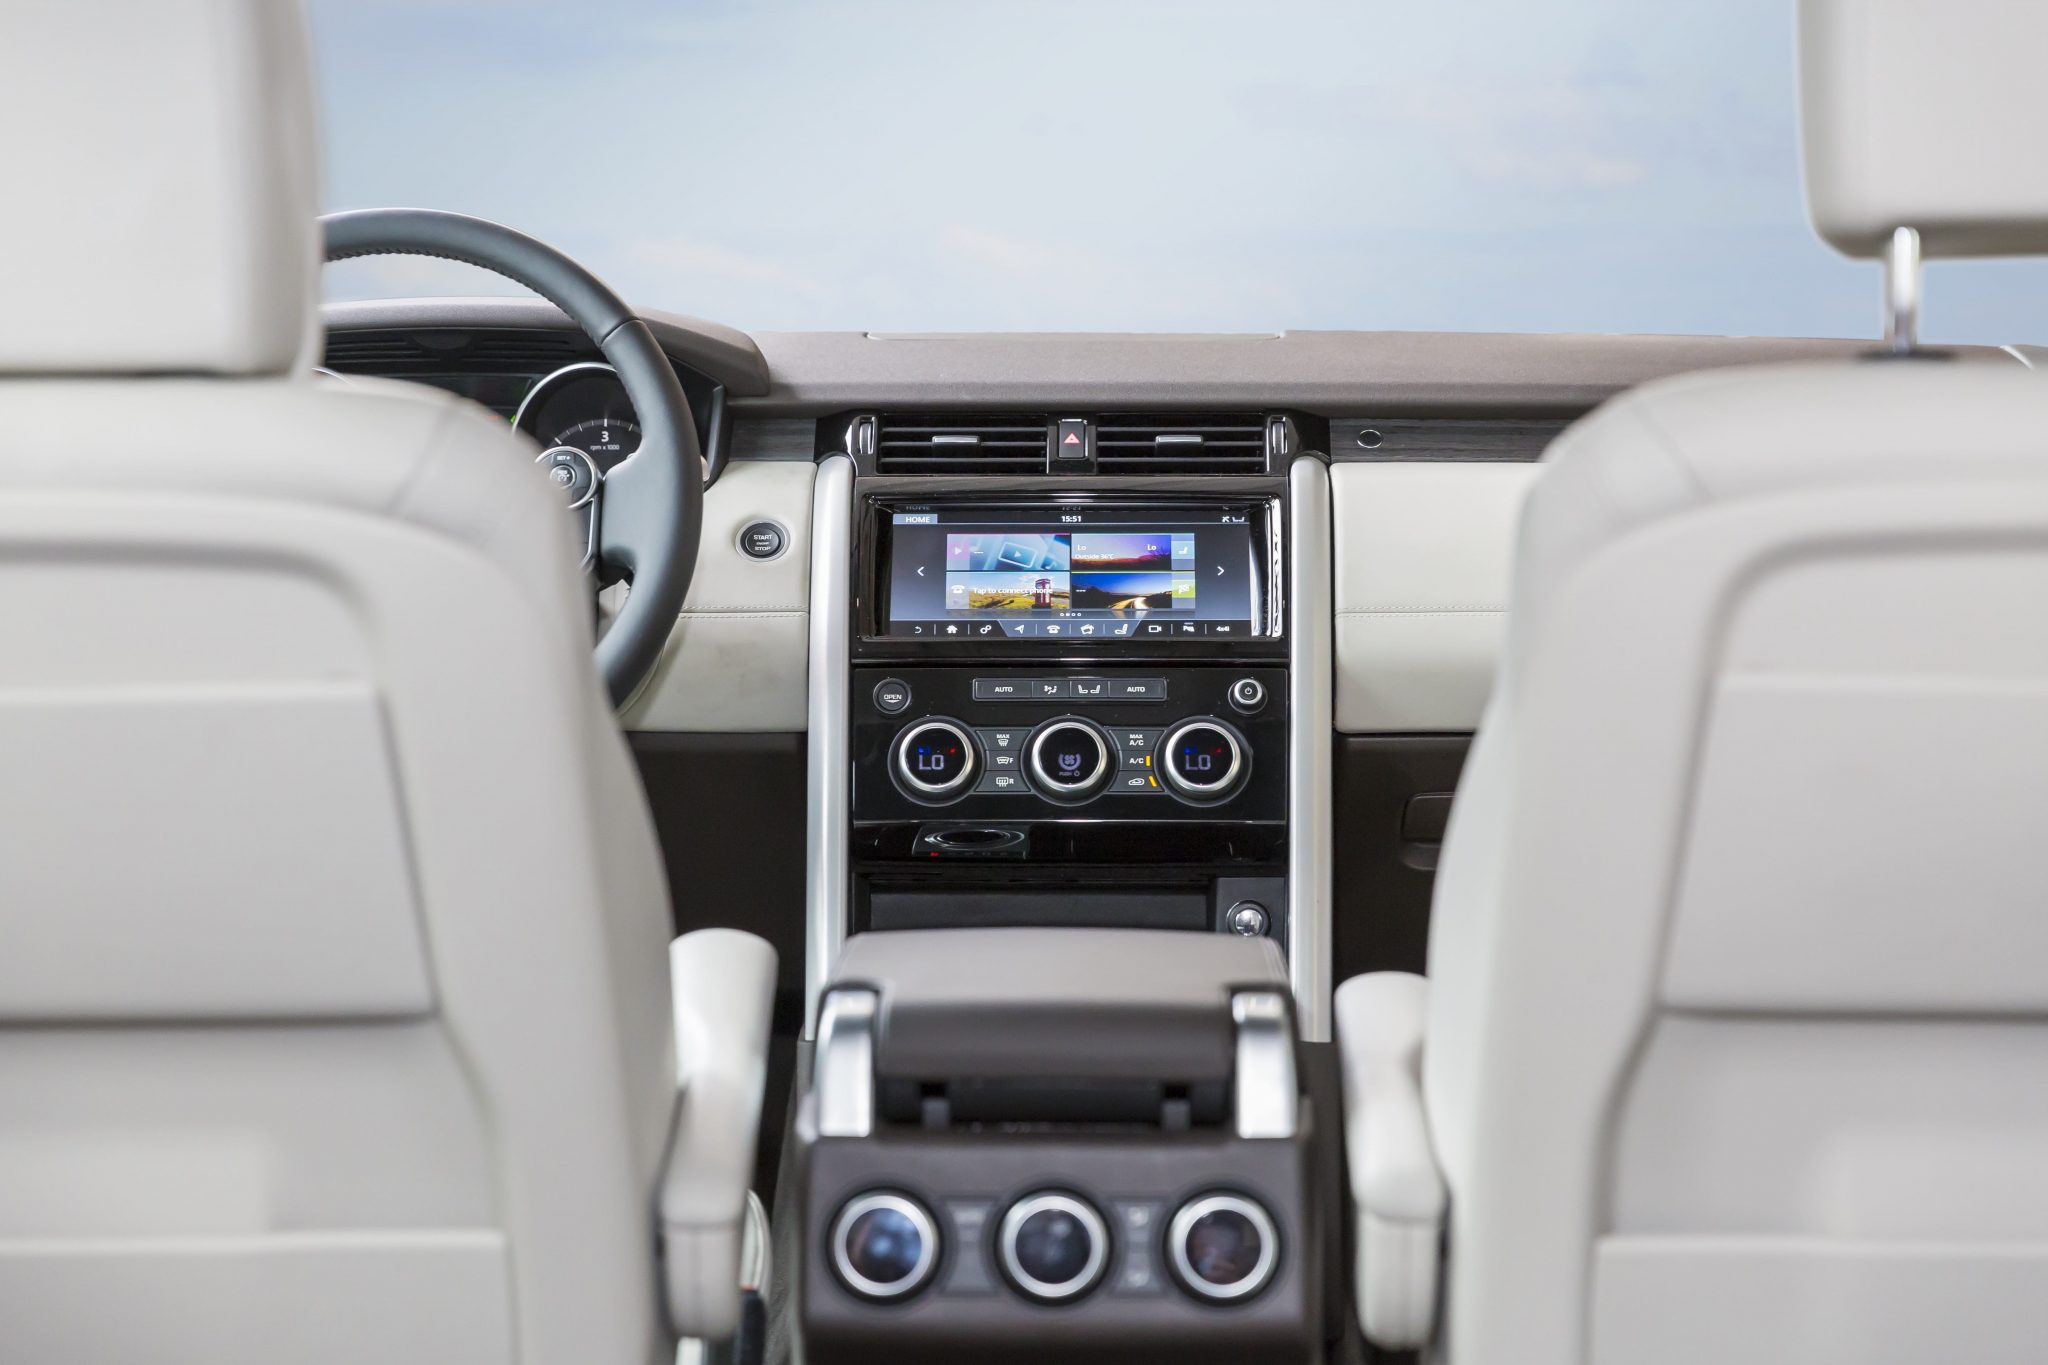 2017 Land Rover Discovery: First look